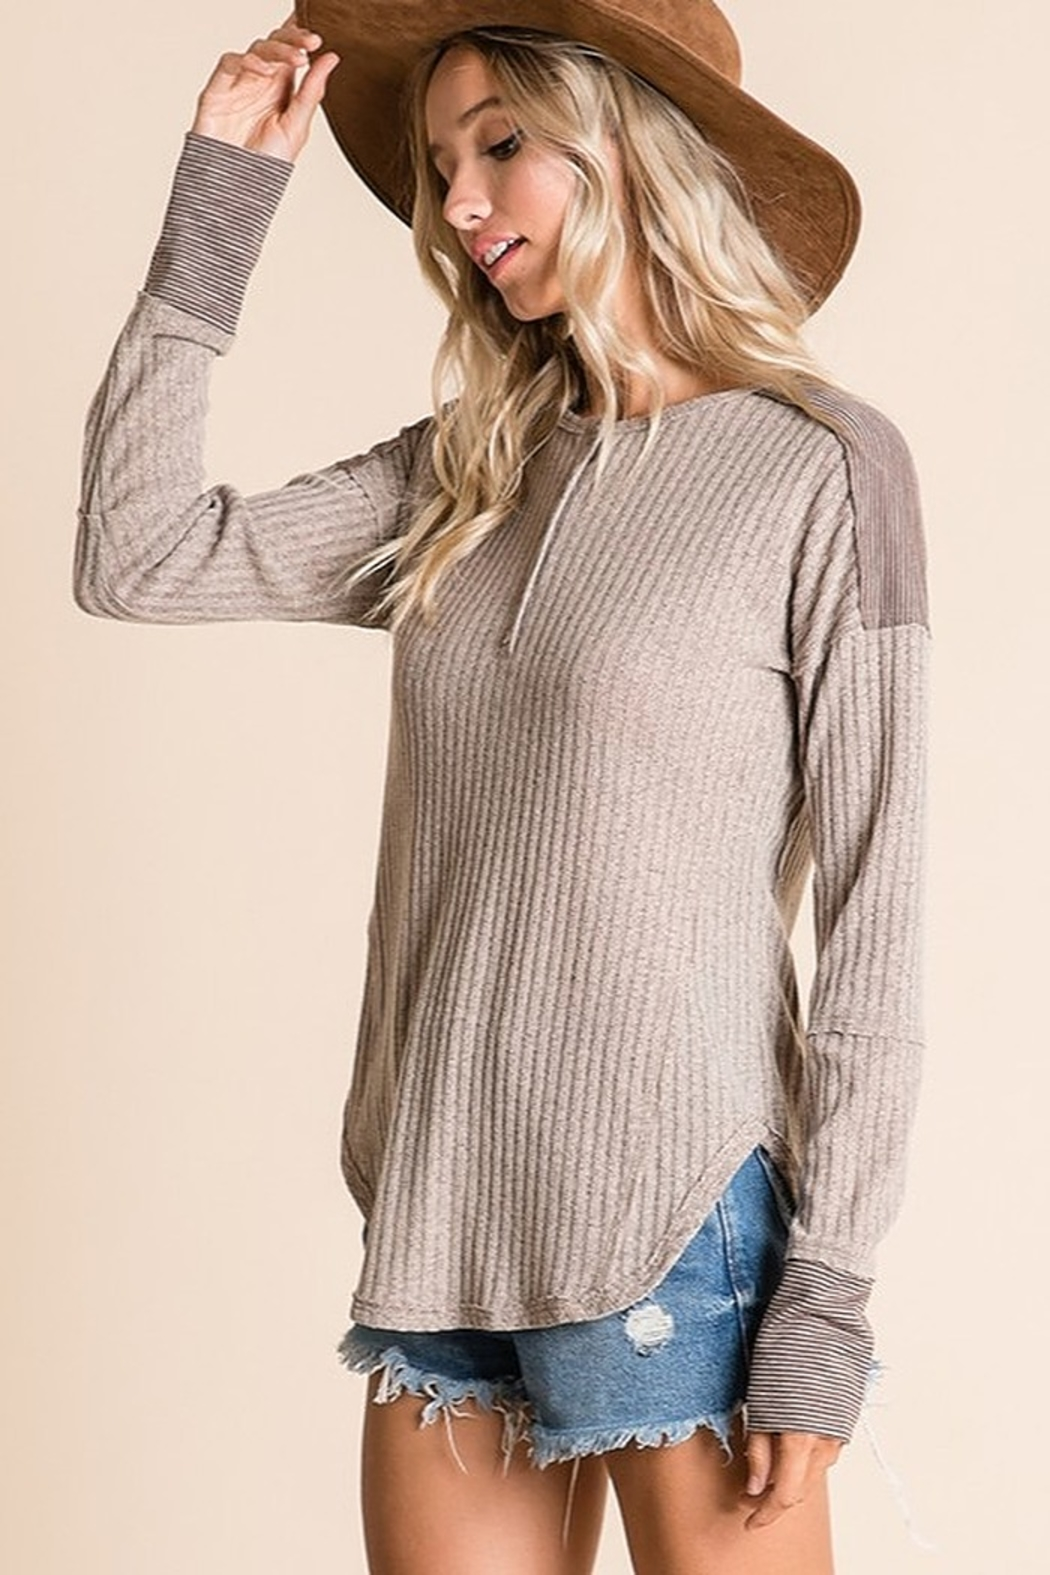 Ces Femme Ribbed Fabric Mix Match Top - Side Cropped Image